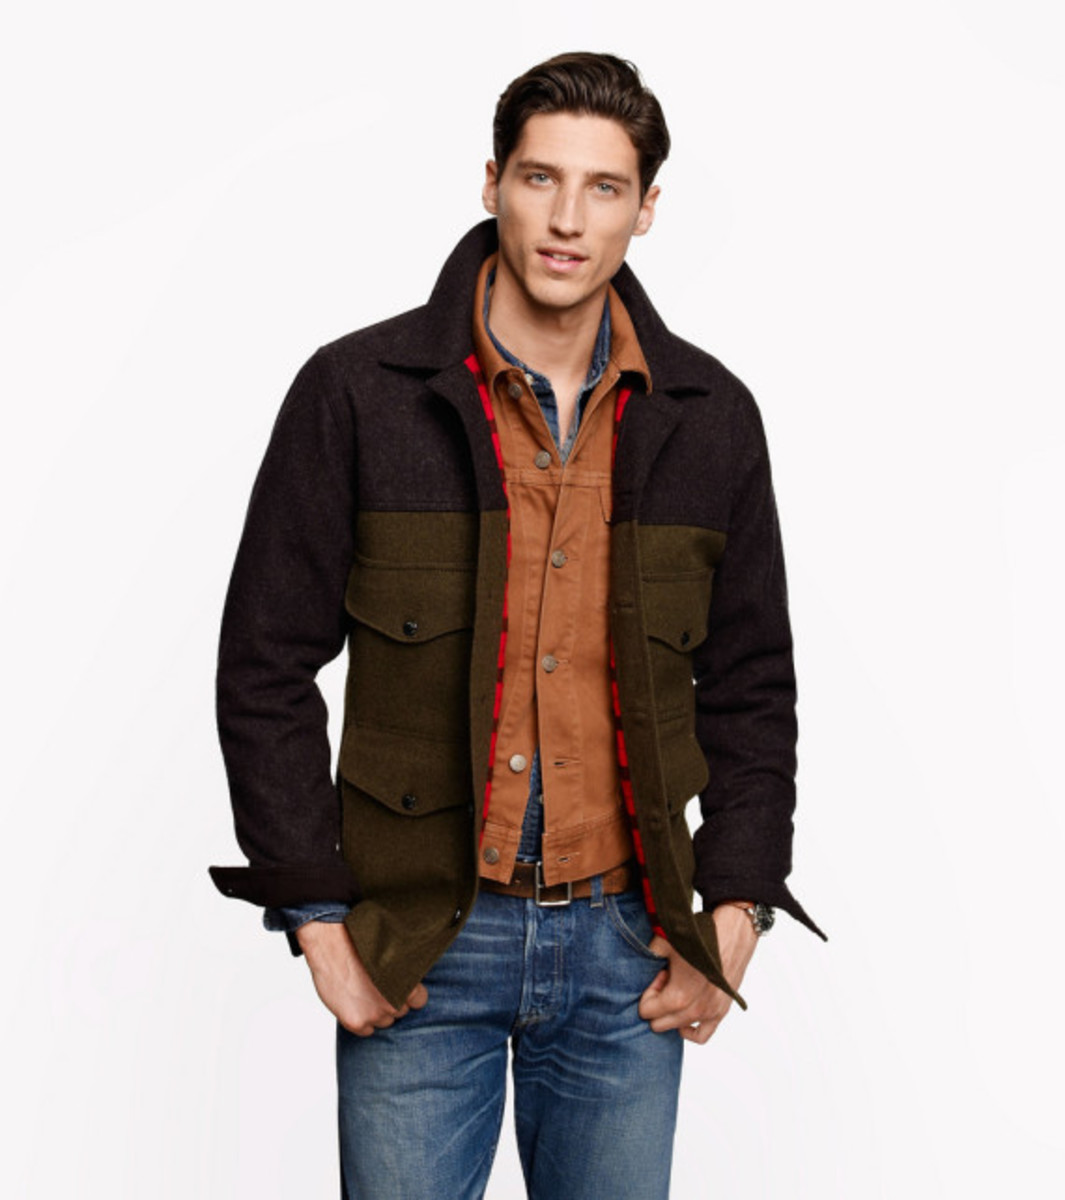 filson-jcrew-fall-2013-capsule-collection-10